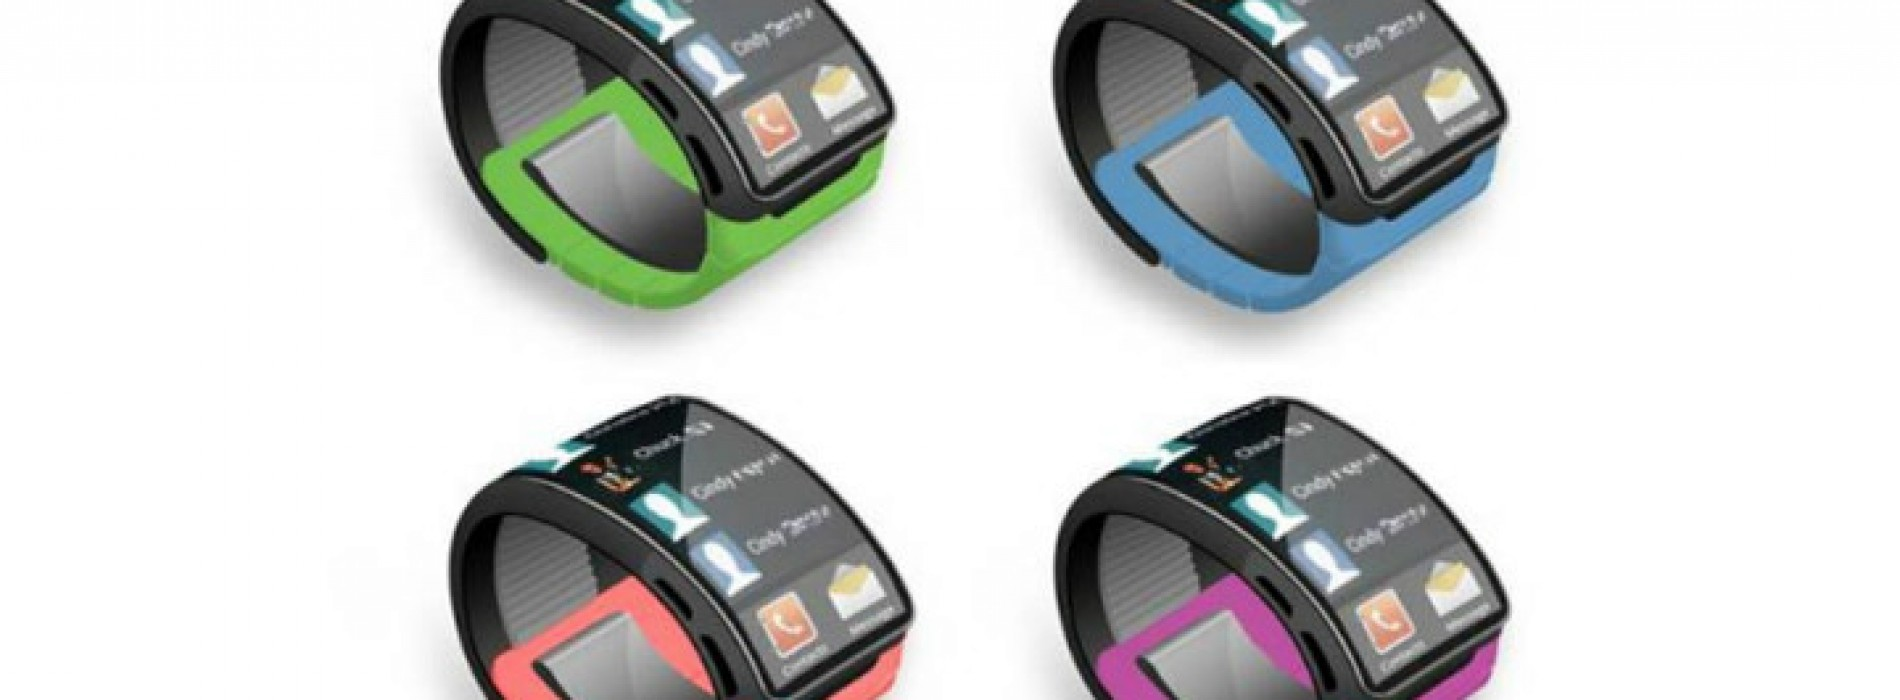 Samsung exec confirms Galaxy Gear to debut Sept 4